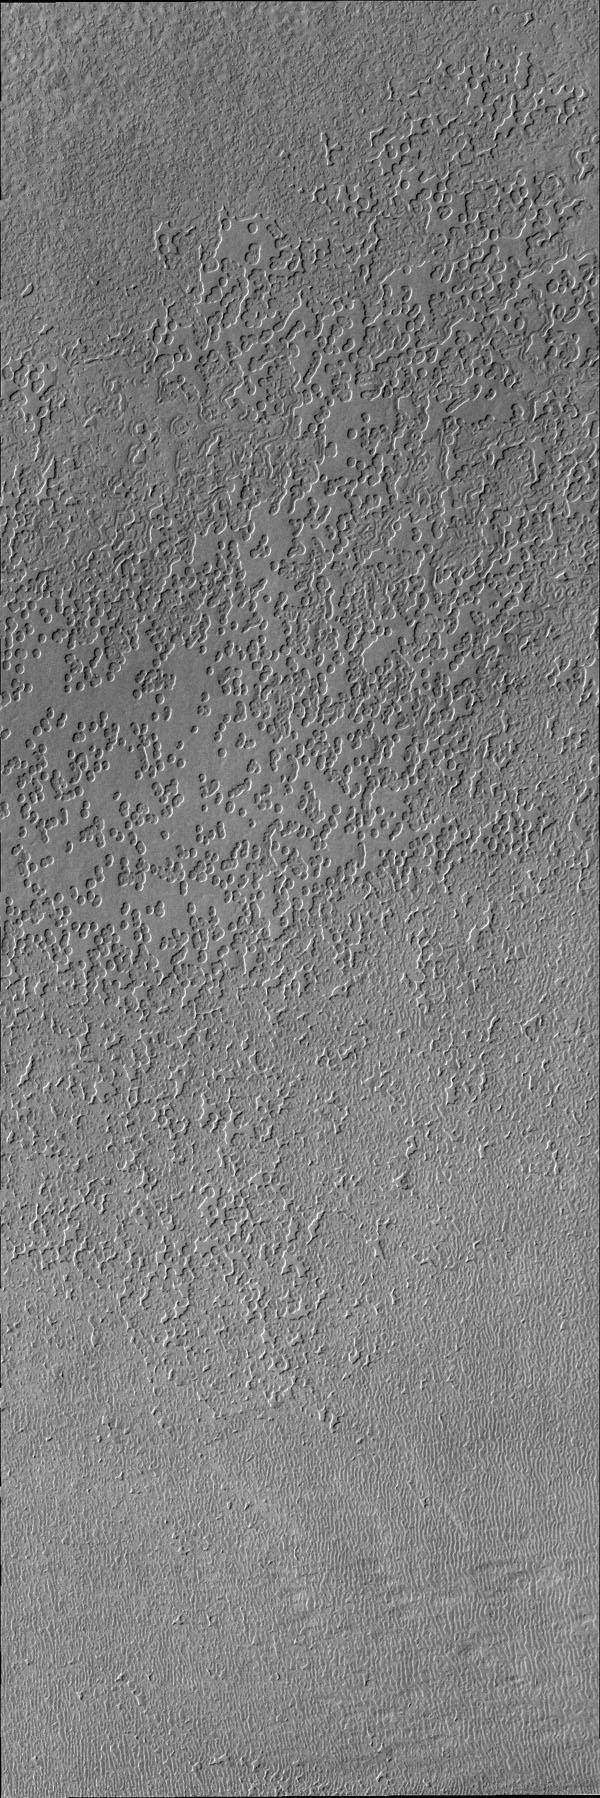 This image from NASA's Mars Odyssey is of the south polar surface. These pits appear to coalesce and reveal the surface below.